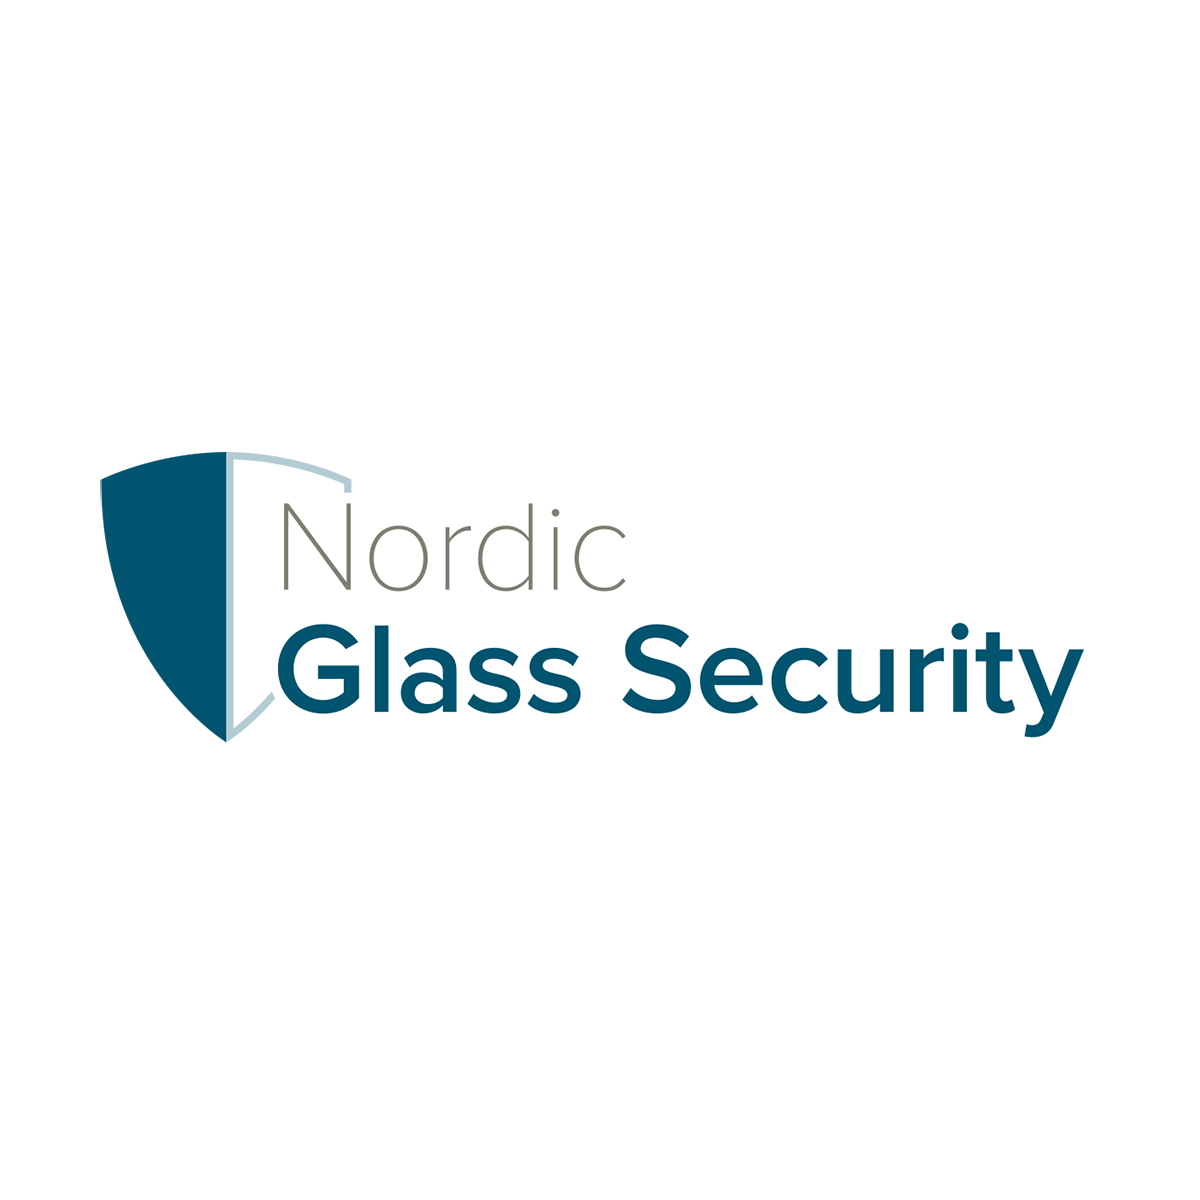 Nordic Glass Security